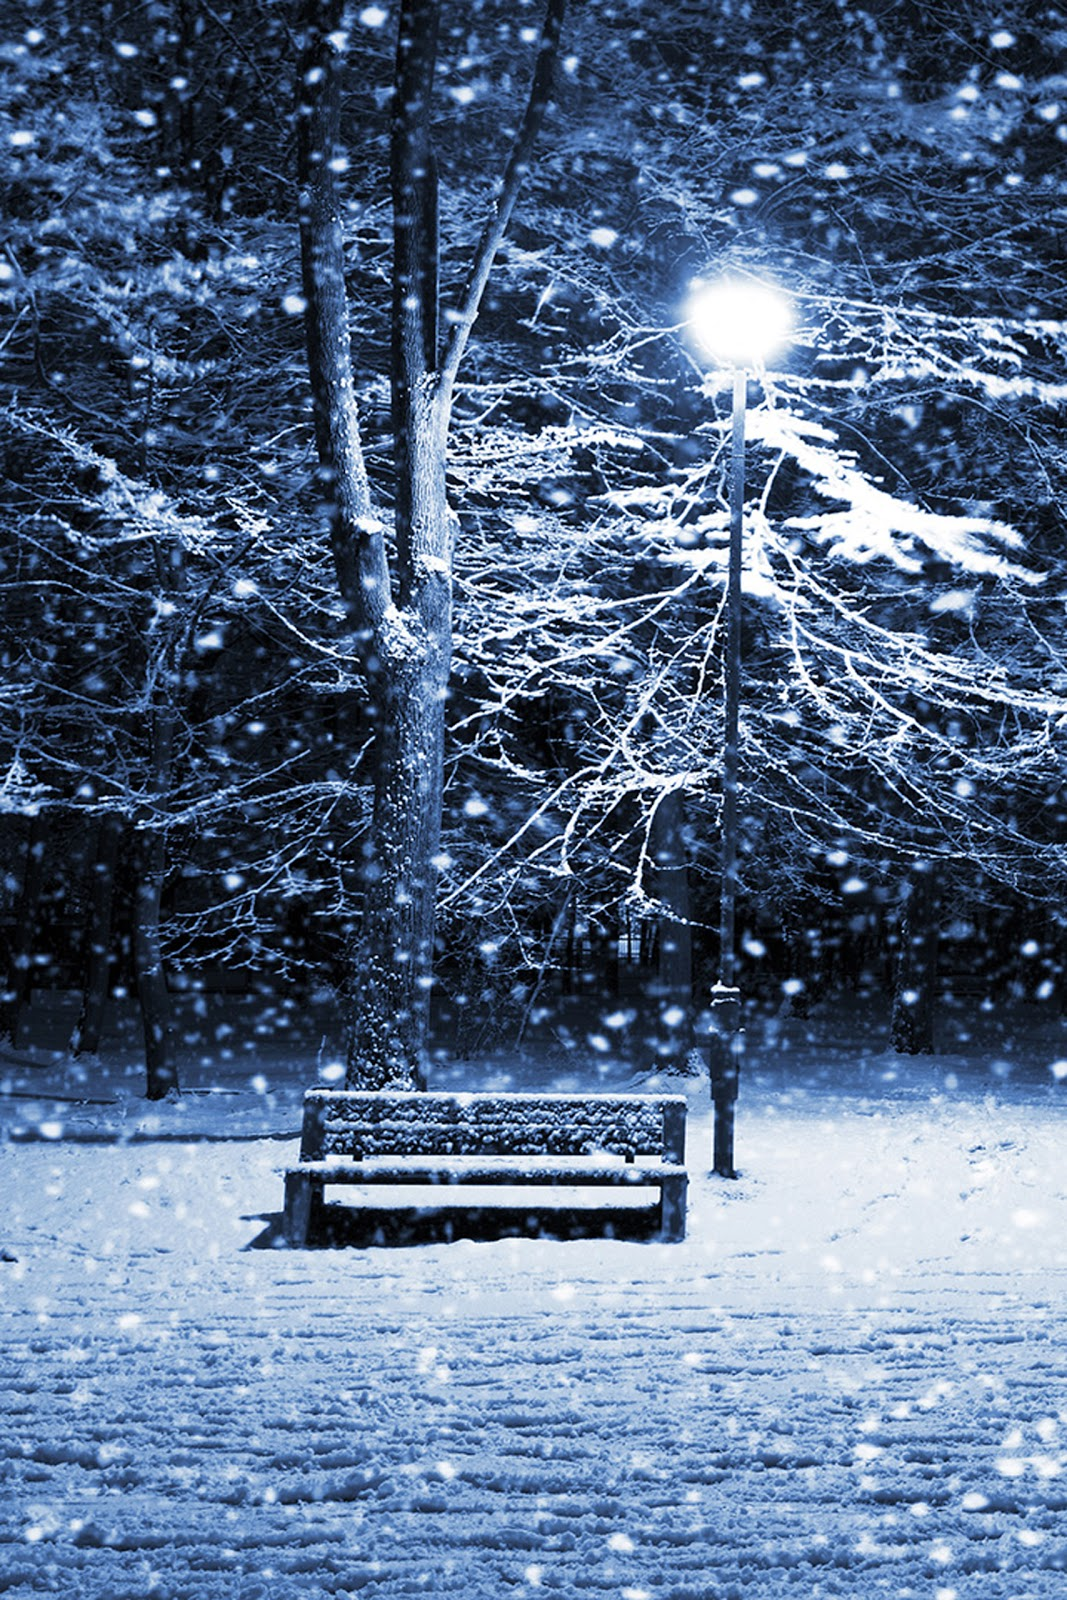 Iphone wallpaper tumblr snow - Iphone Games Apps Wallpapers Ringtones Themes